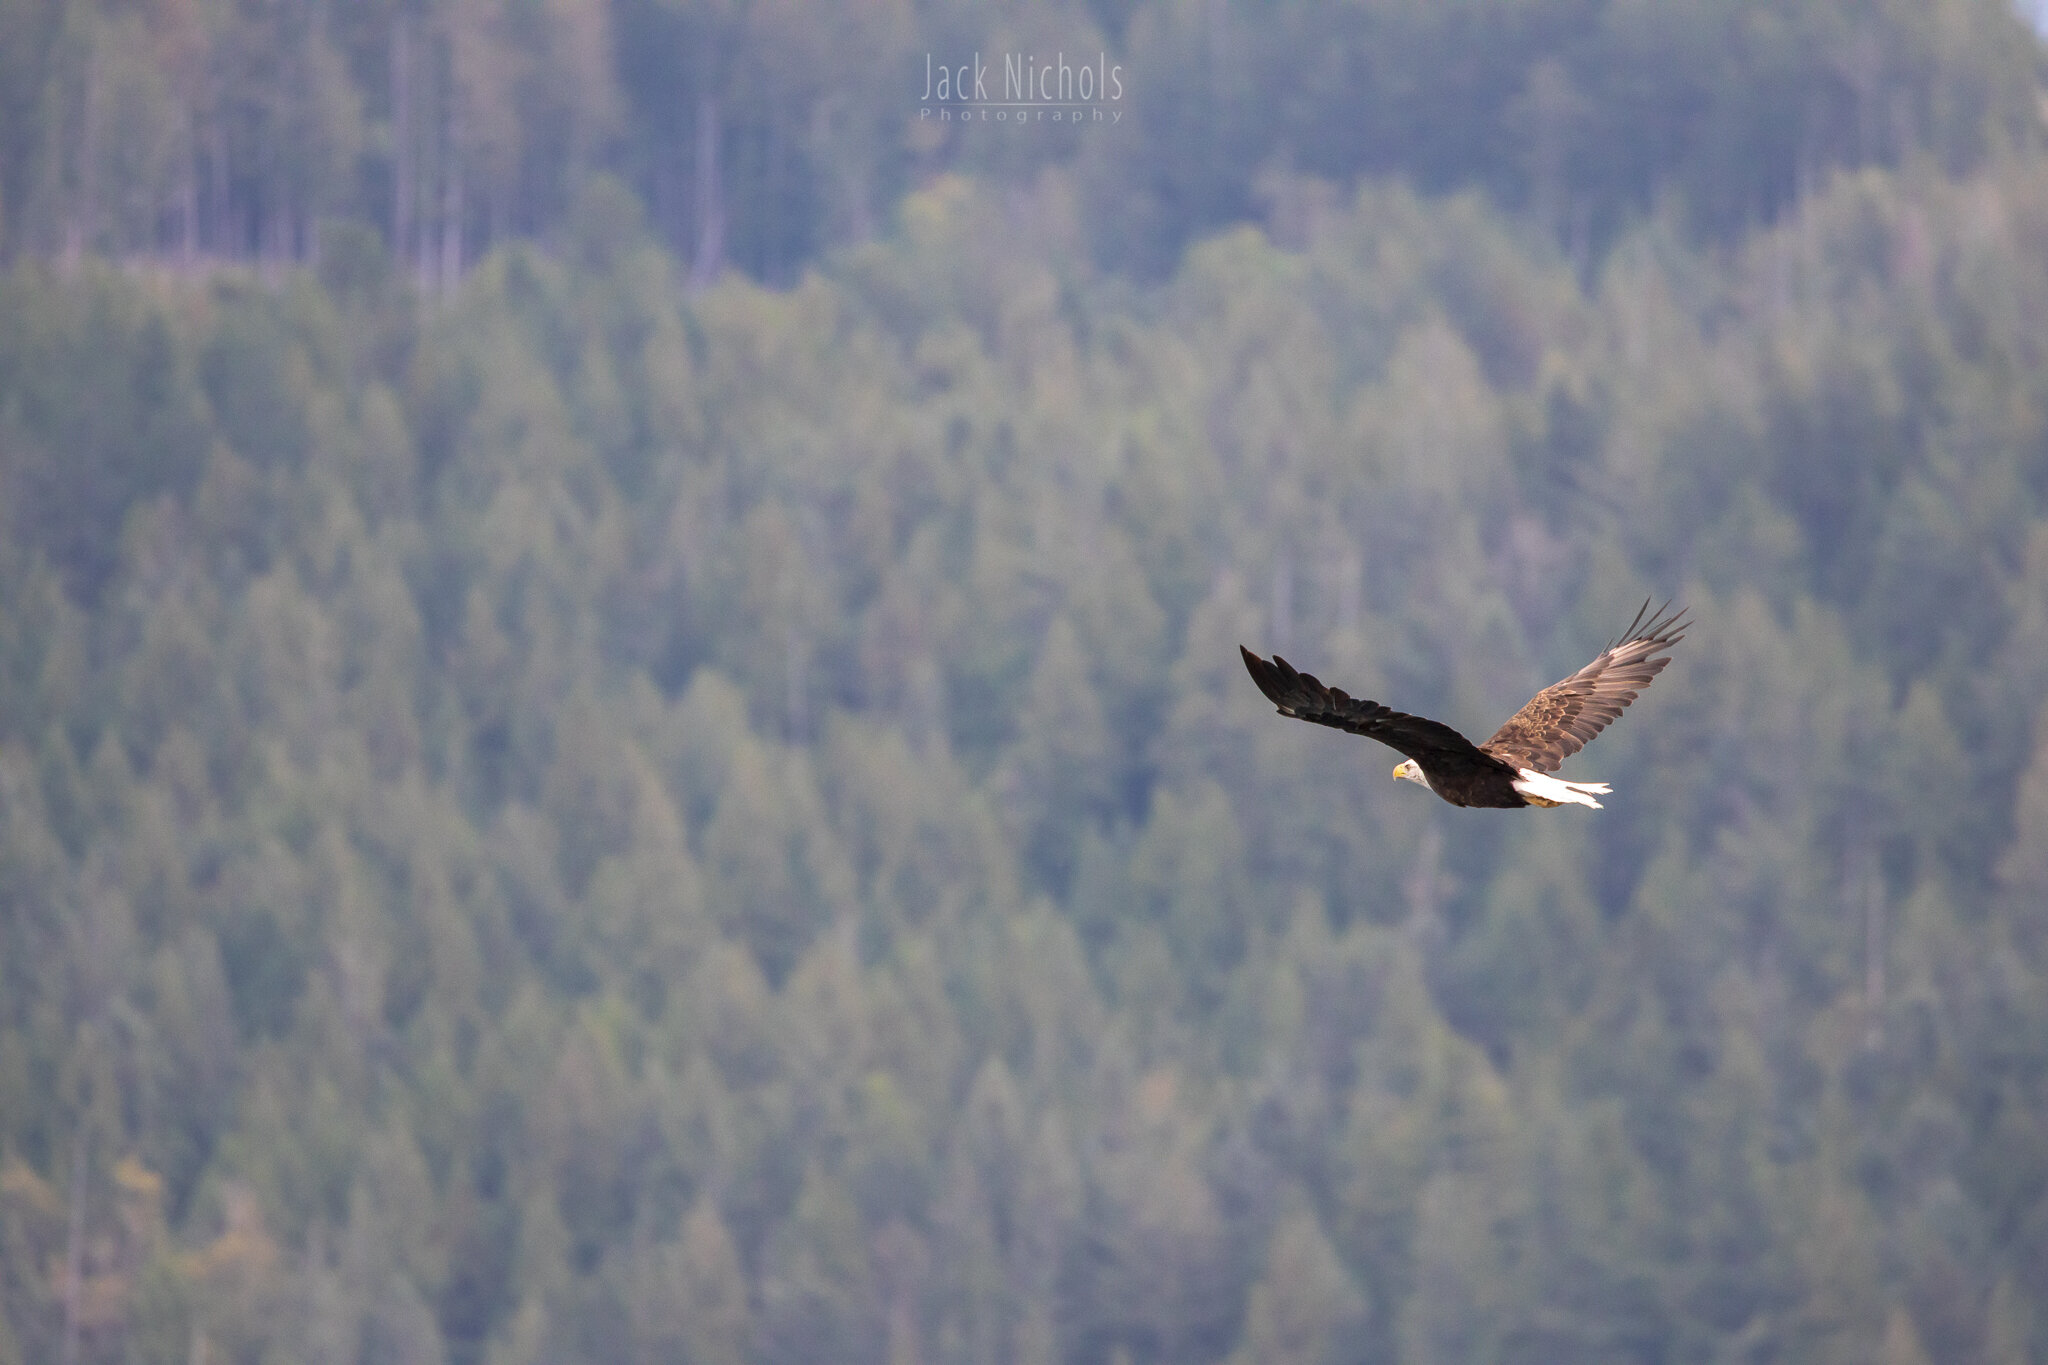 Campbell River, Water - Bald eagle flying in front of a distant forested hillside-20190907.jpg